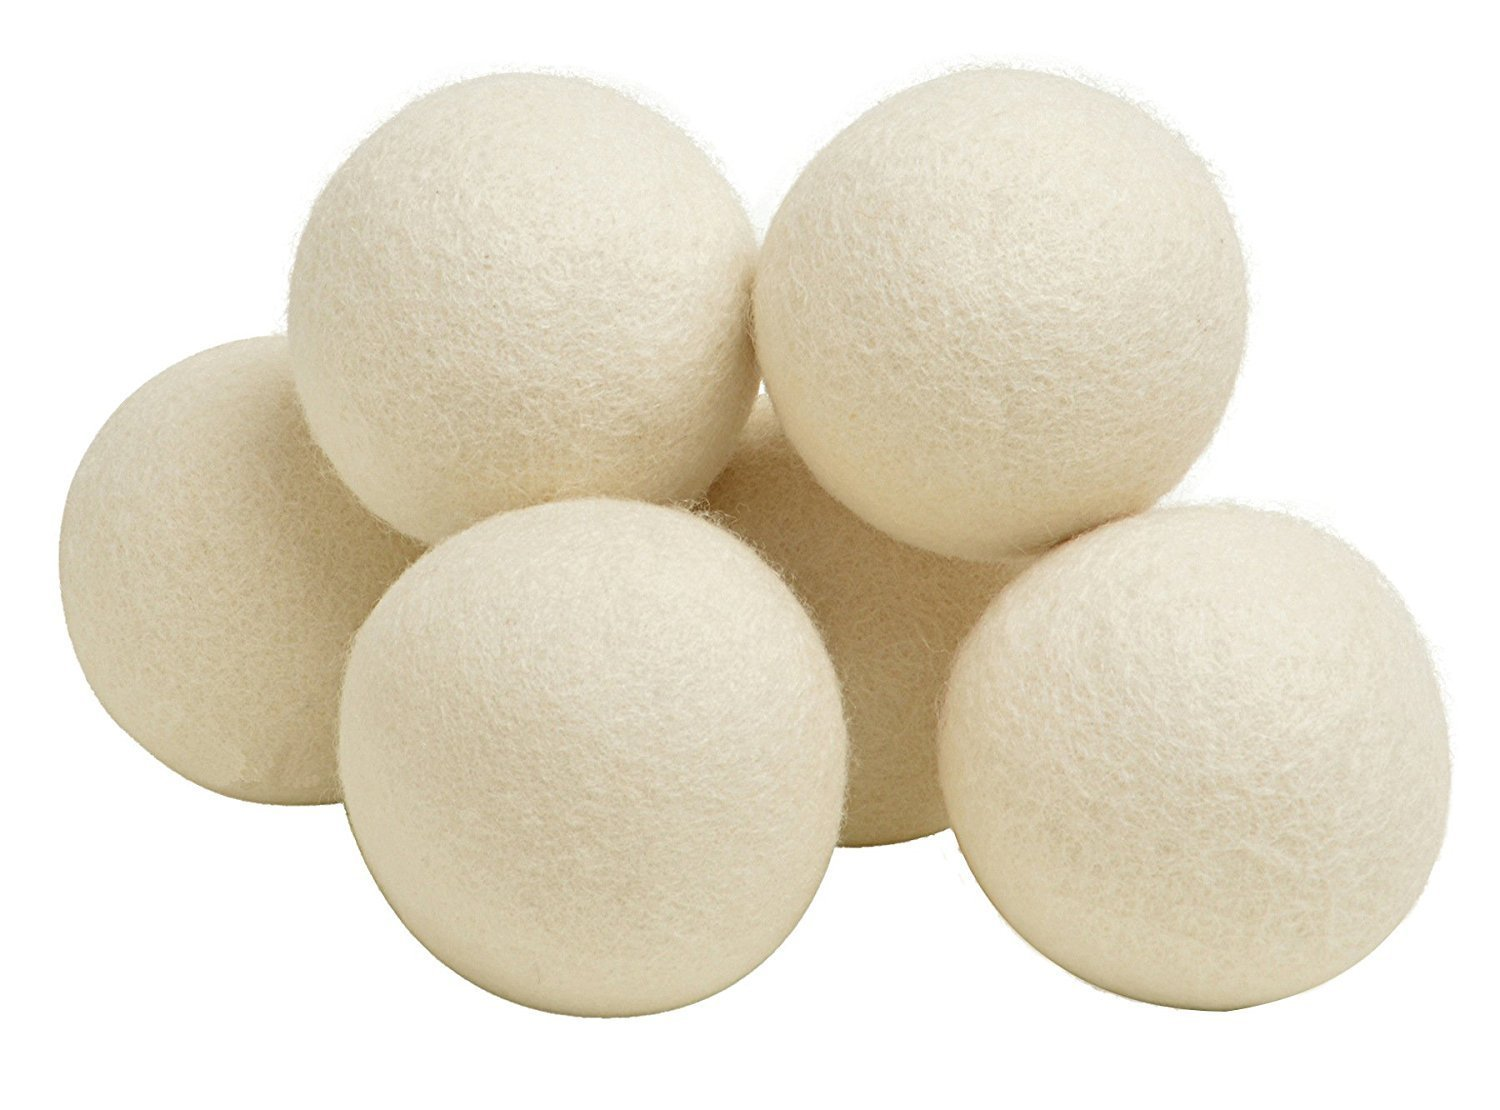 1Pack(6pcs) Wool Dryer Balls- Natural Fabric Reusable, Reduce Wrinkles, Saves Drying Time Anti Static Large Felted Wool Clothes Dryer Balls a Better Alternative to Plastic Balls